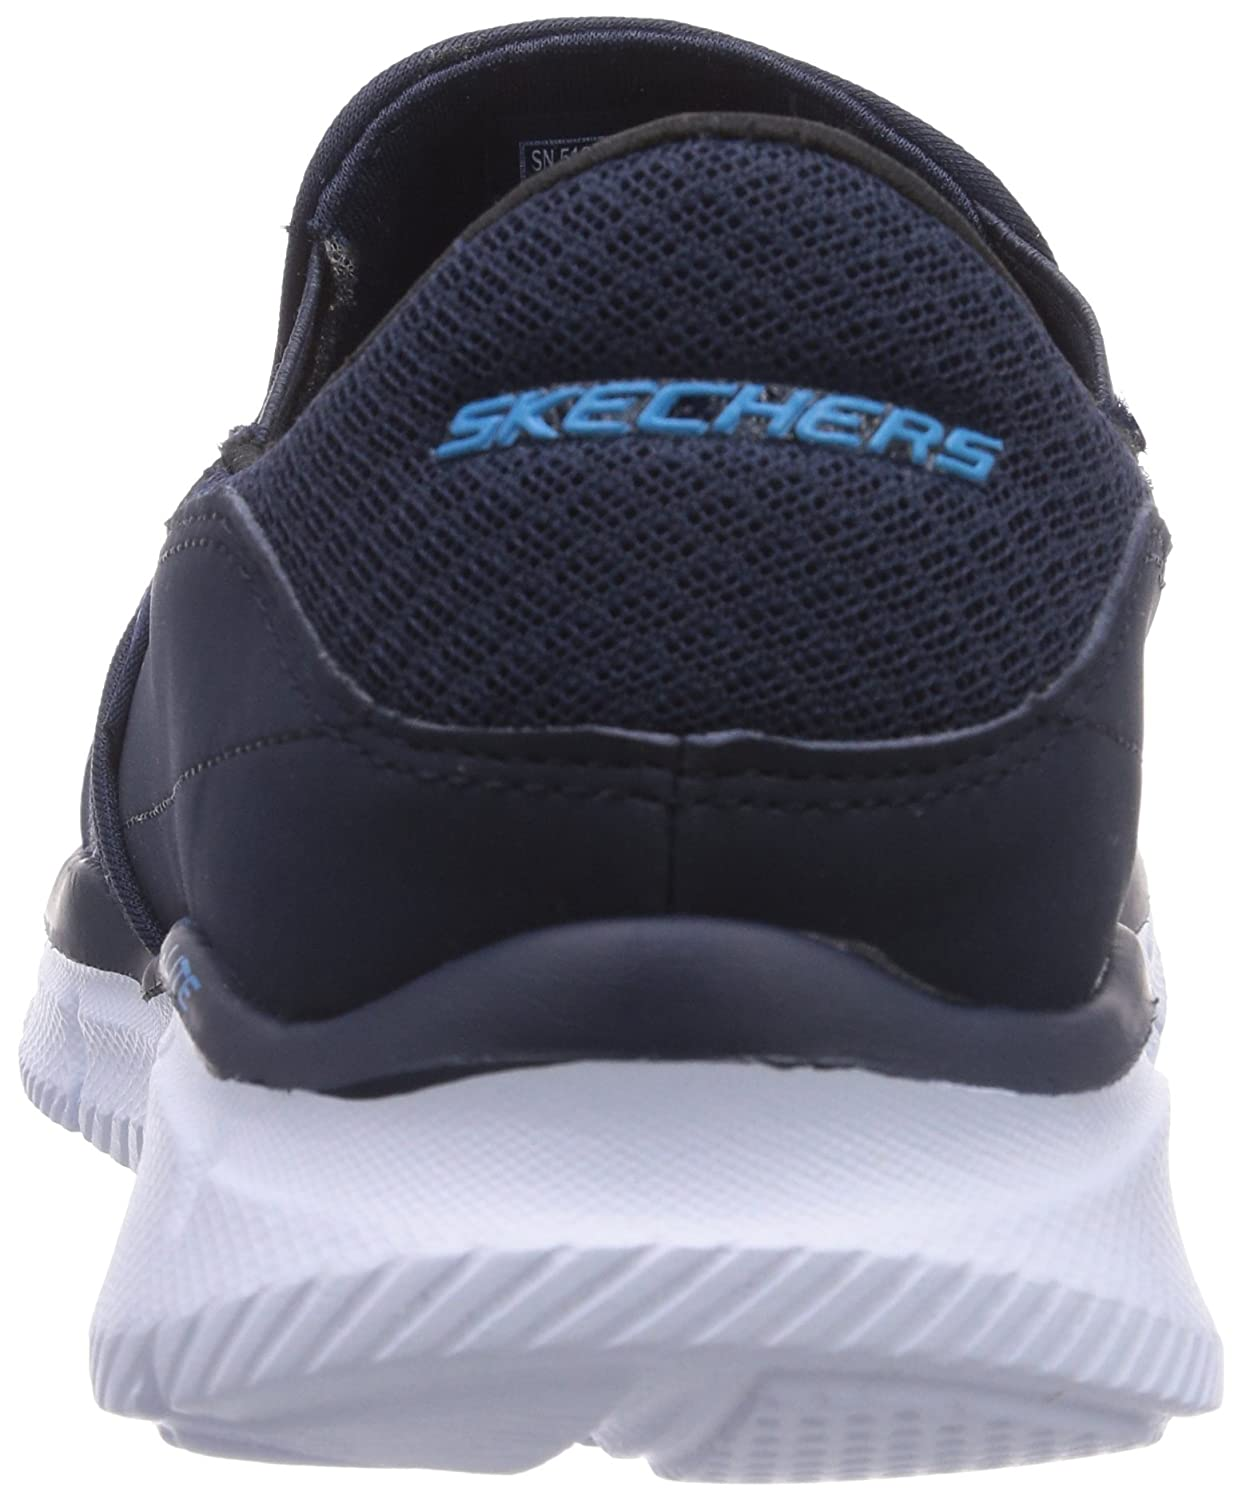 Skechers Equalizer Persistent Men Low-Top Sneakers  Amazon.co.uk  Shoes    Bags f53f45b085